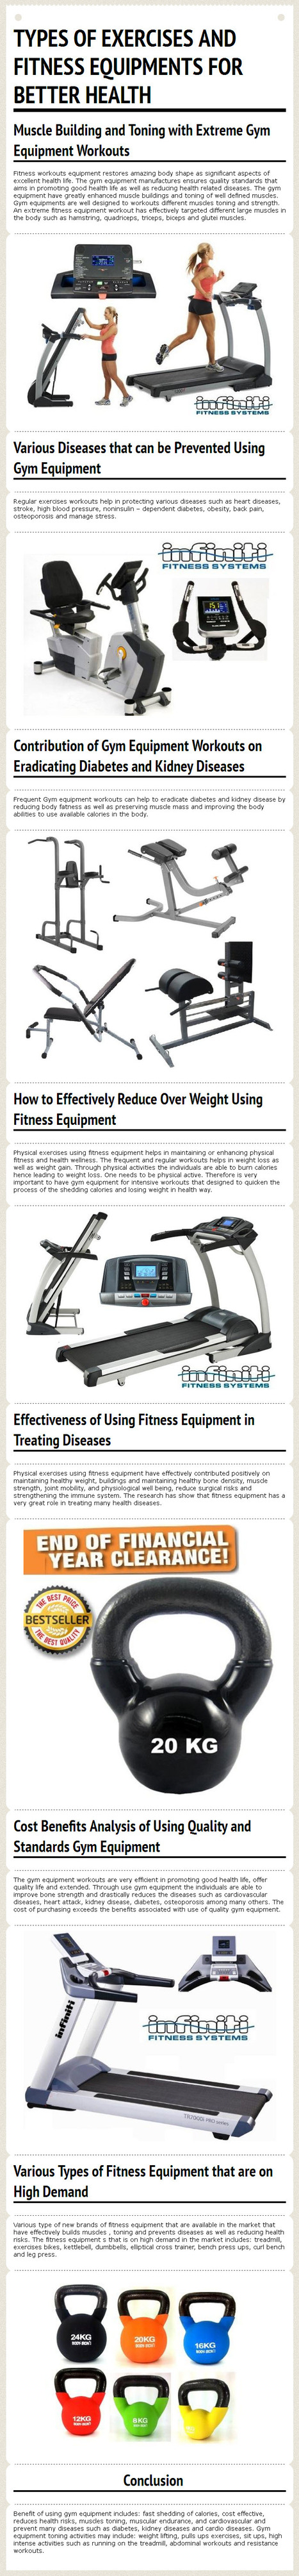 Types of Exercises and Fitness Equipments for Better Health from www.worldfitness.com.au   worldfitness   Scoop.it